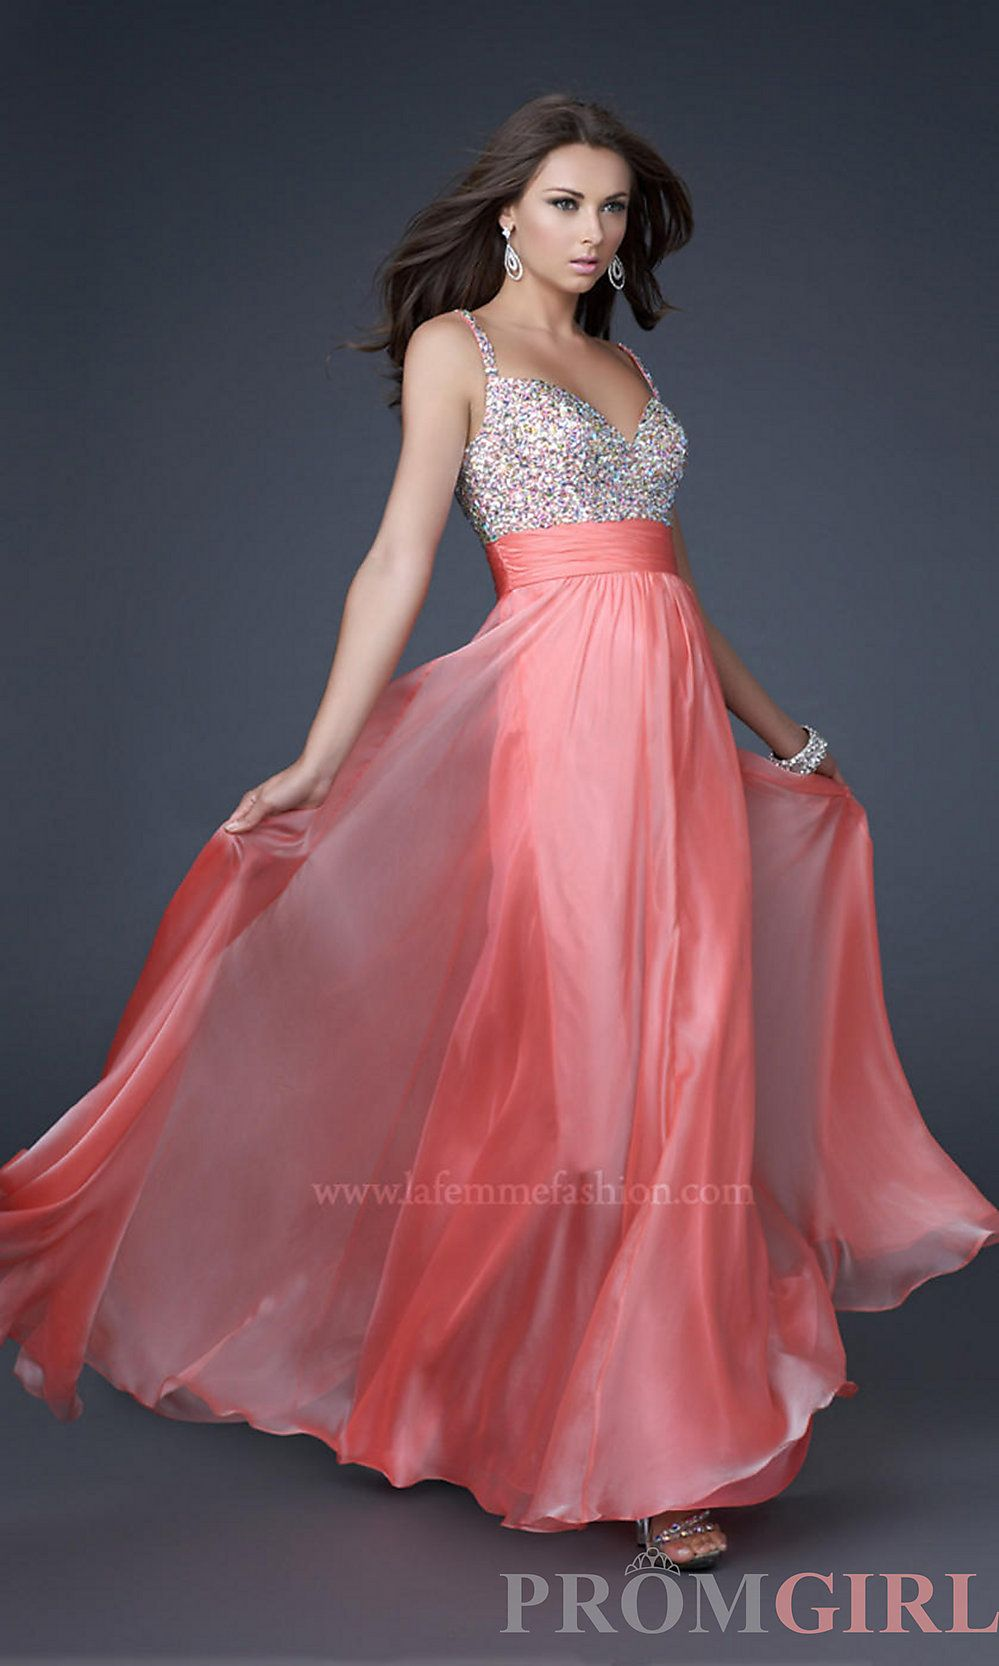 I love the color and the flow the dress has.